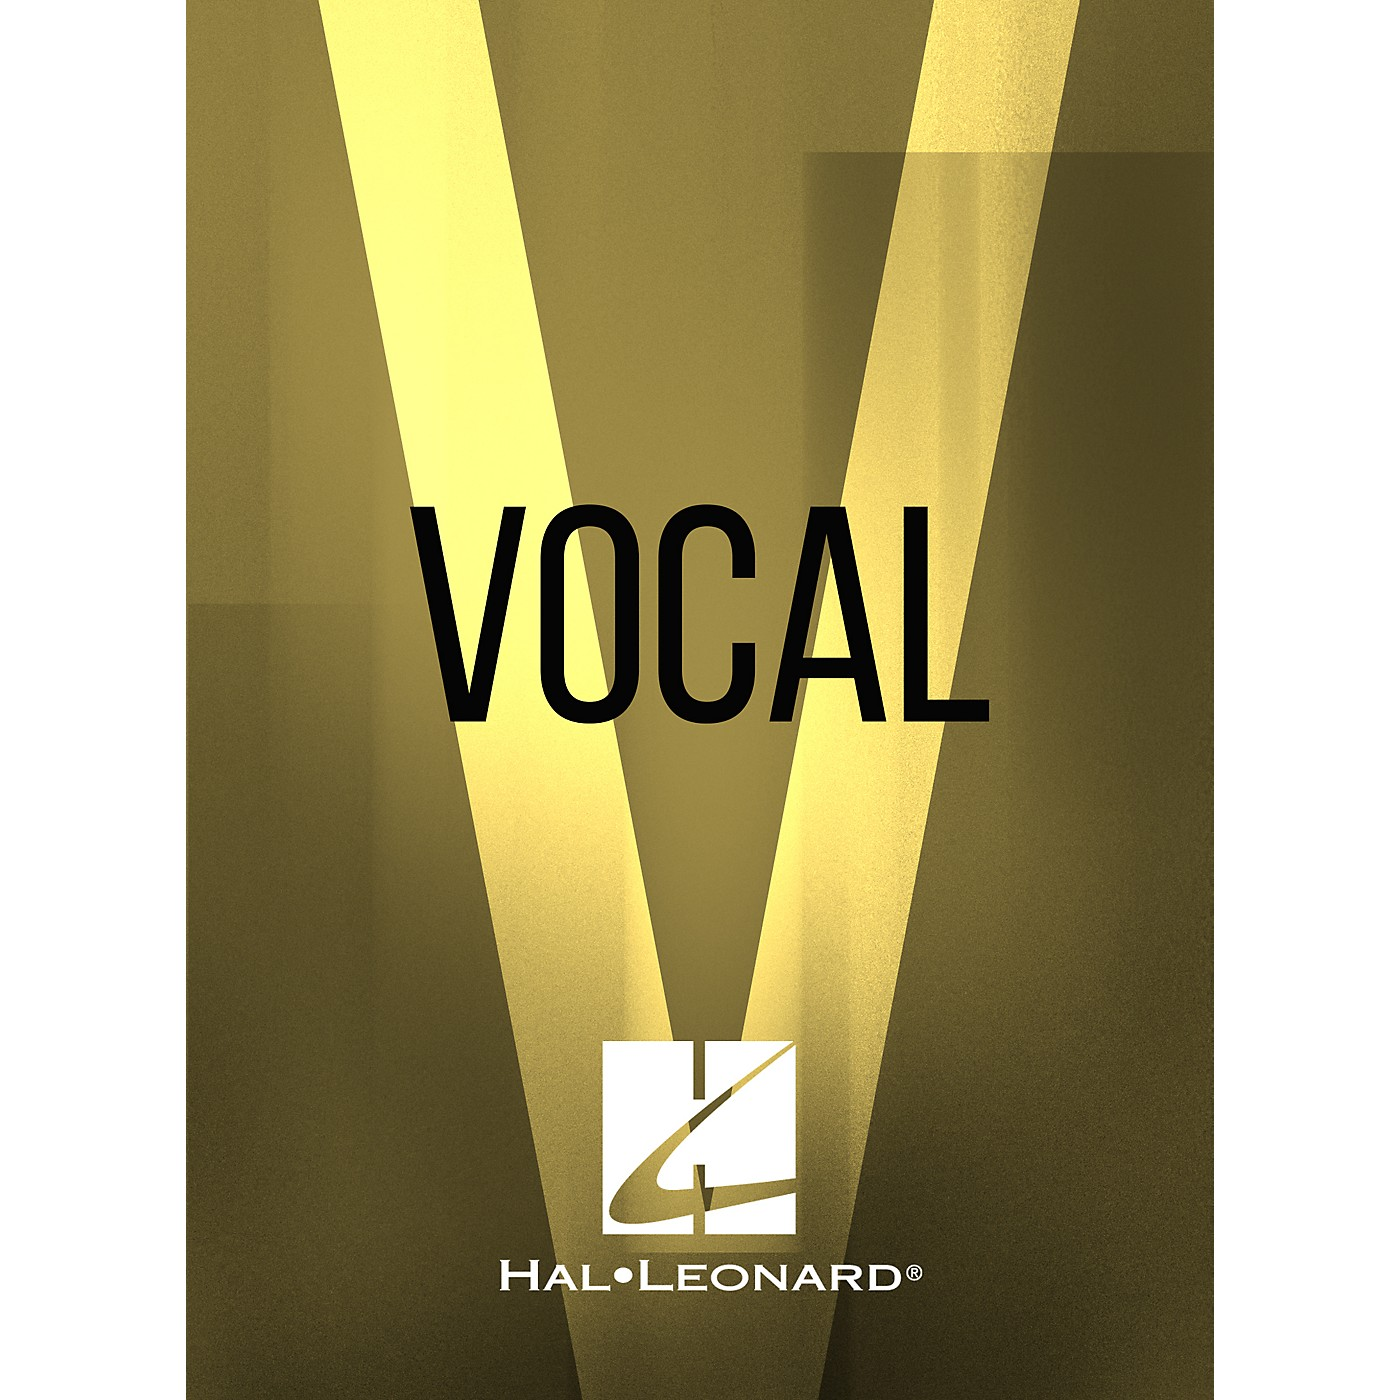 Hal Leonard Gypsy Vocal Score Series  by Stephen Sondheim thumbnail